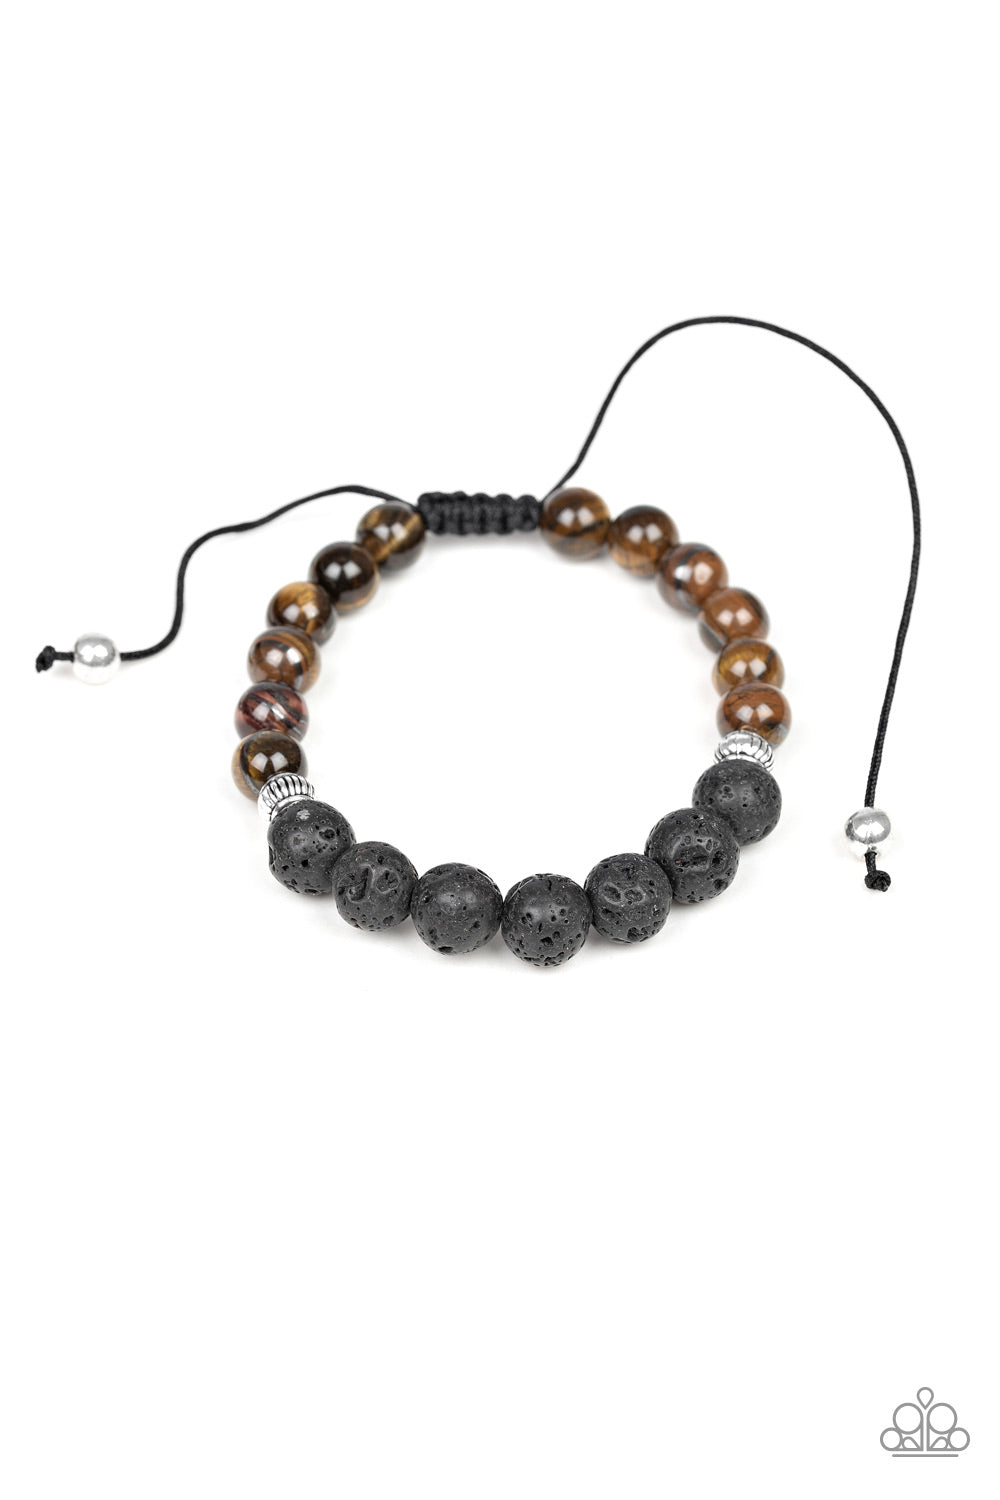 Relaxation Brown Bracelets Paparazzi Accessories - JewelTonez Jewelry